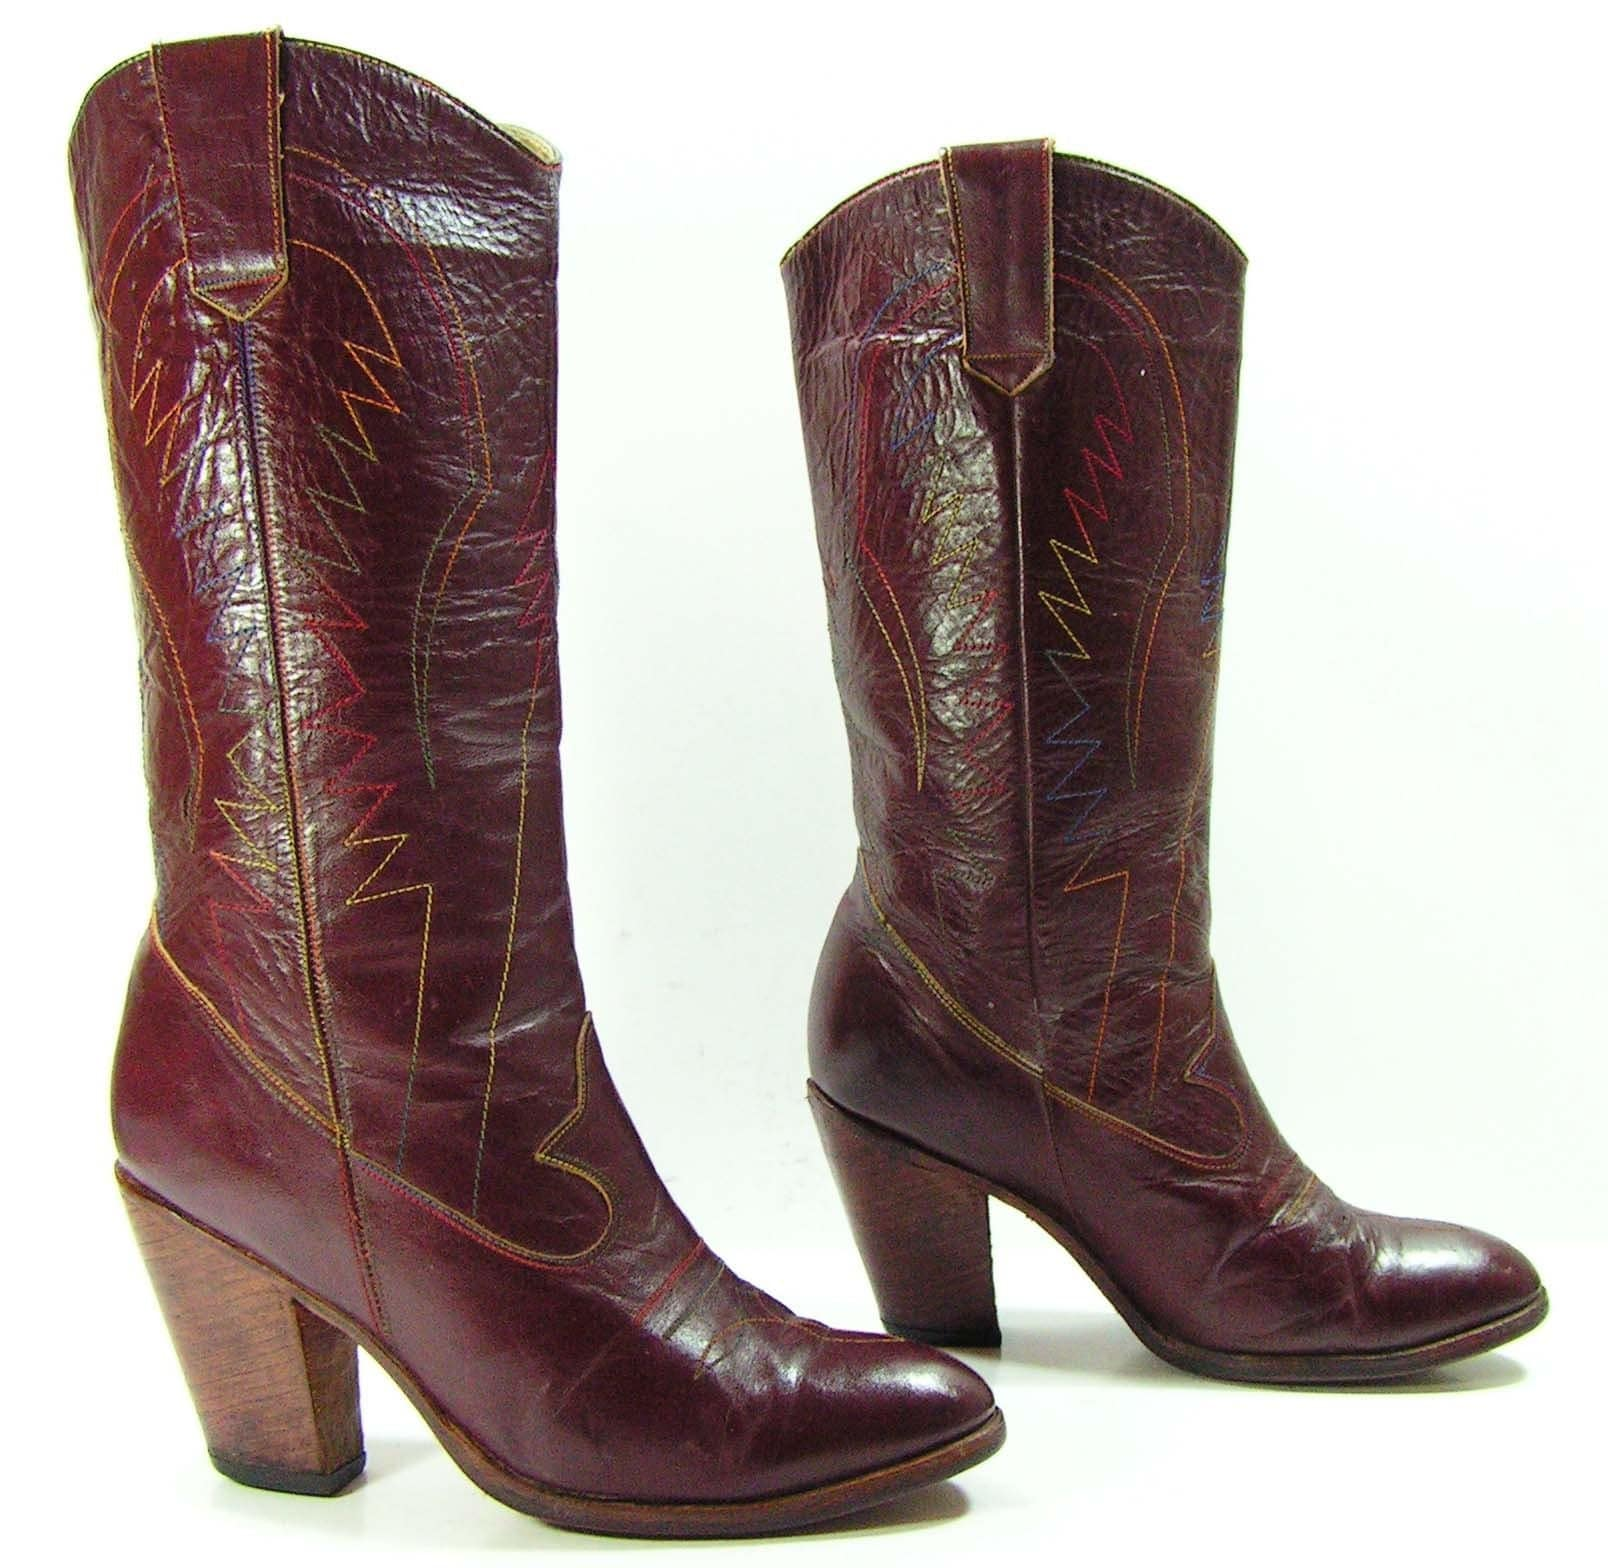 cowboy boots womens 7 M B burgundy high heel by vintagecowboyboots